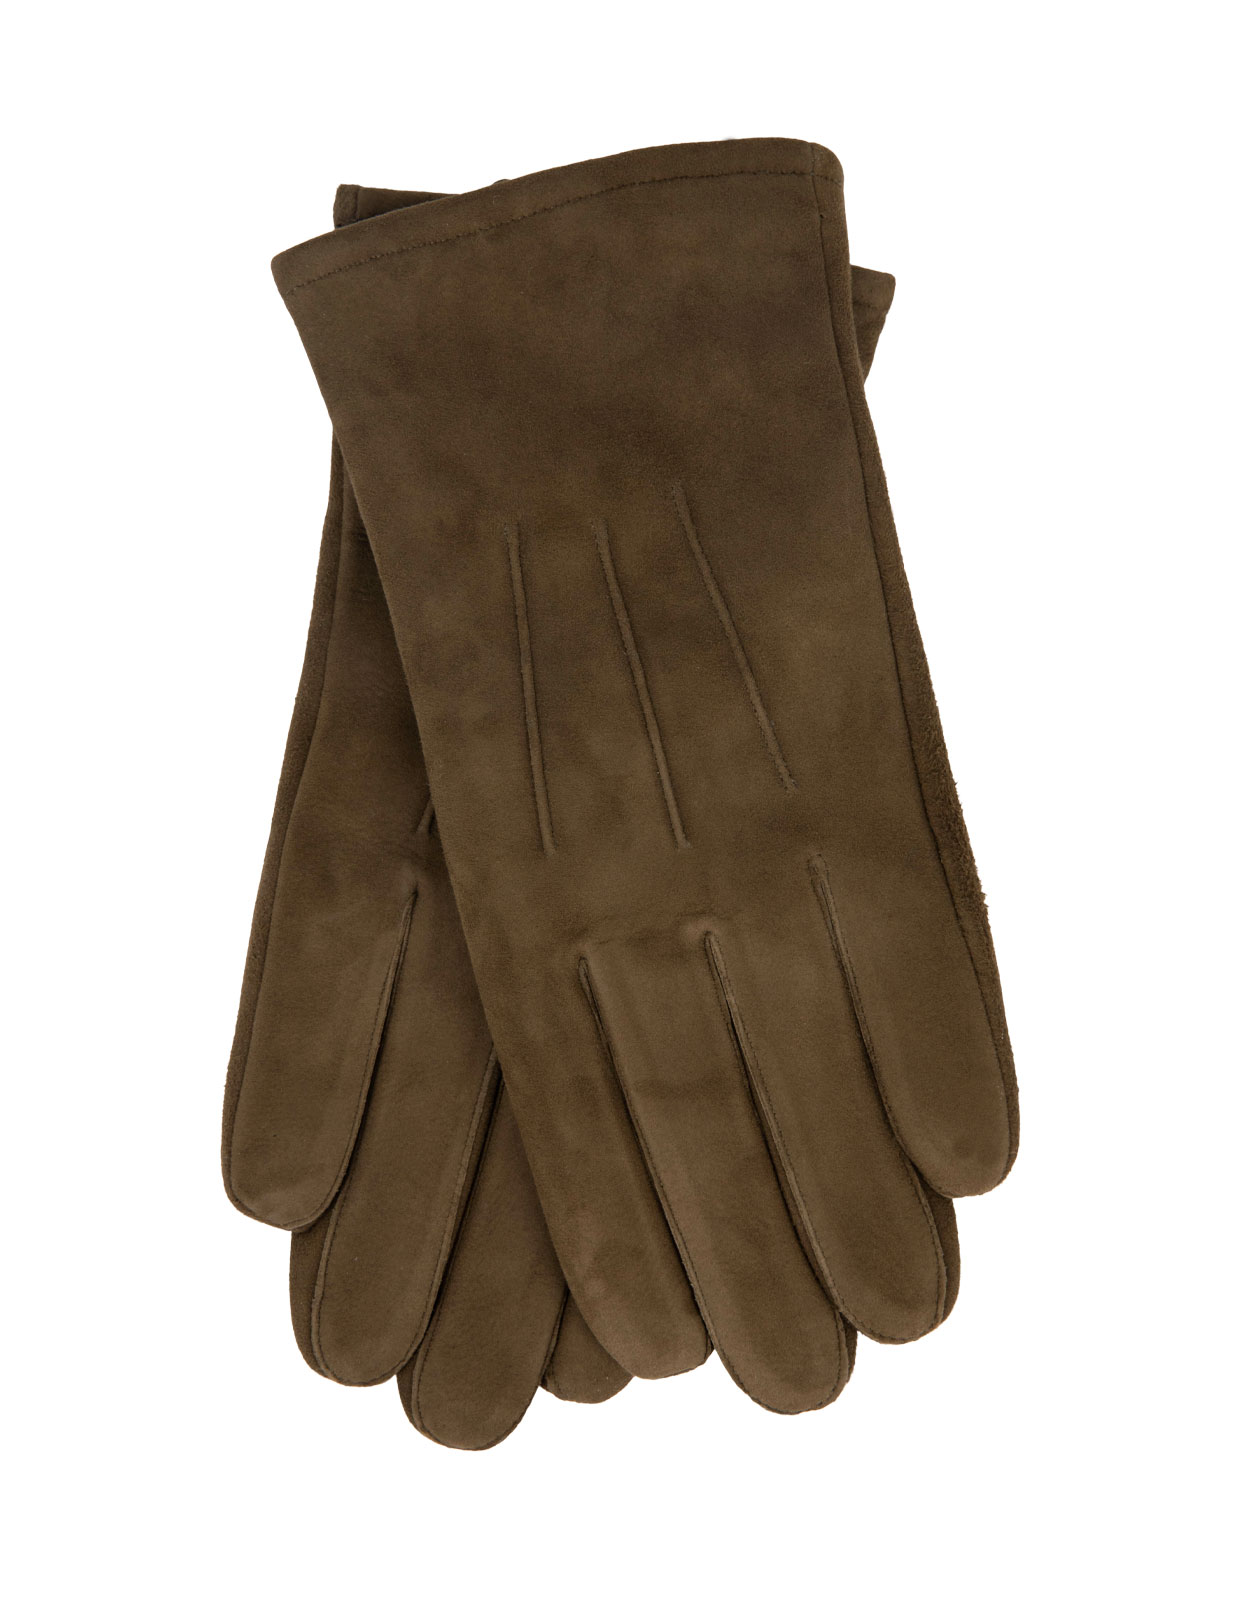 Goatsuede Gloves Olive Green